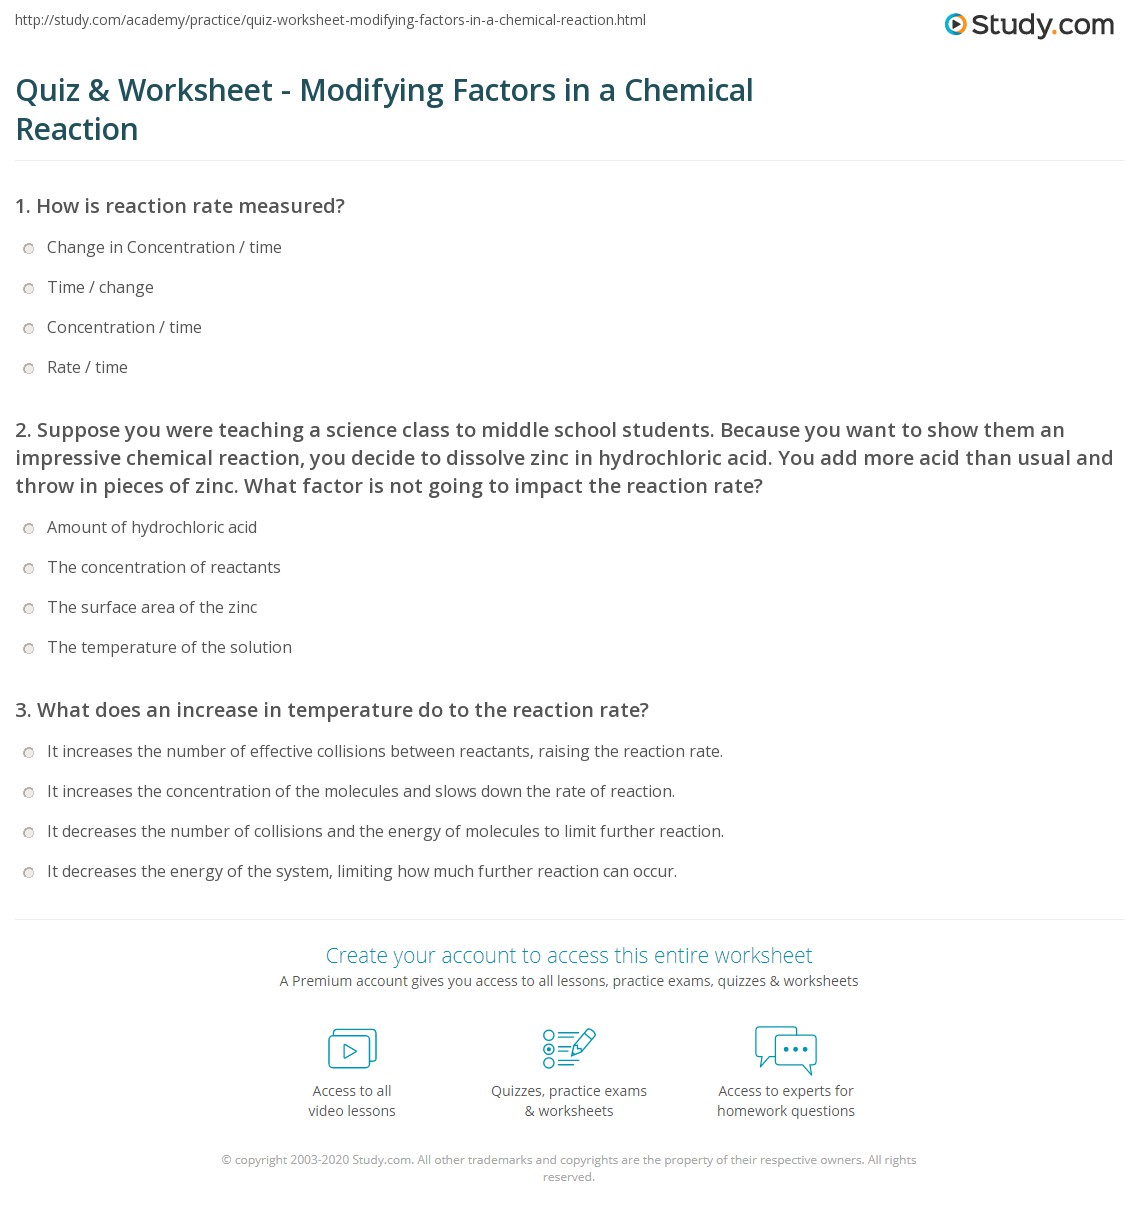 Quiz & Worksheet - Modifying Factors in a Chemical Reaction | Study.com